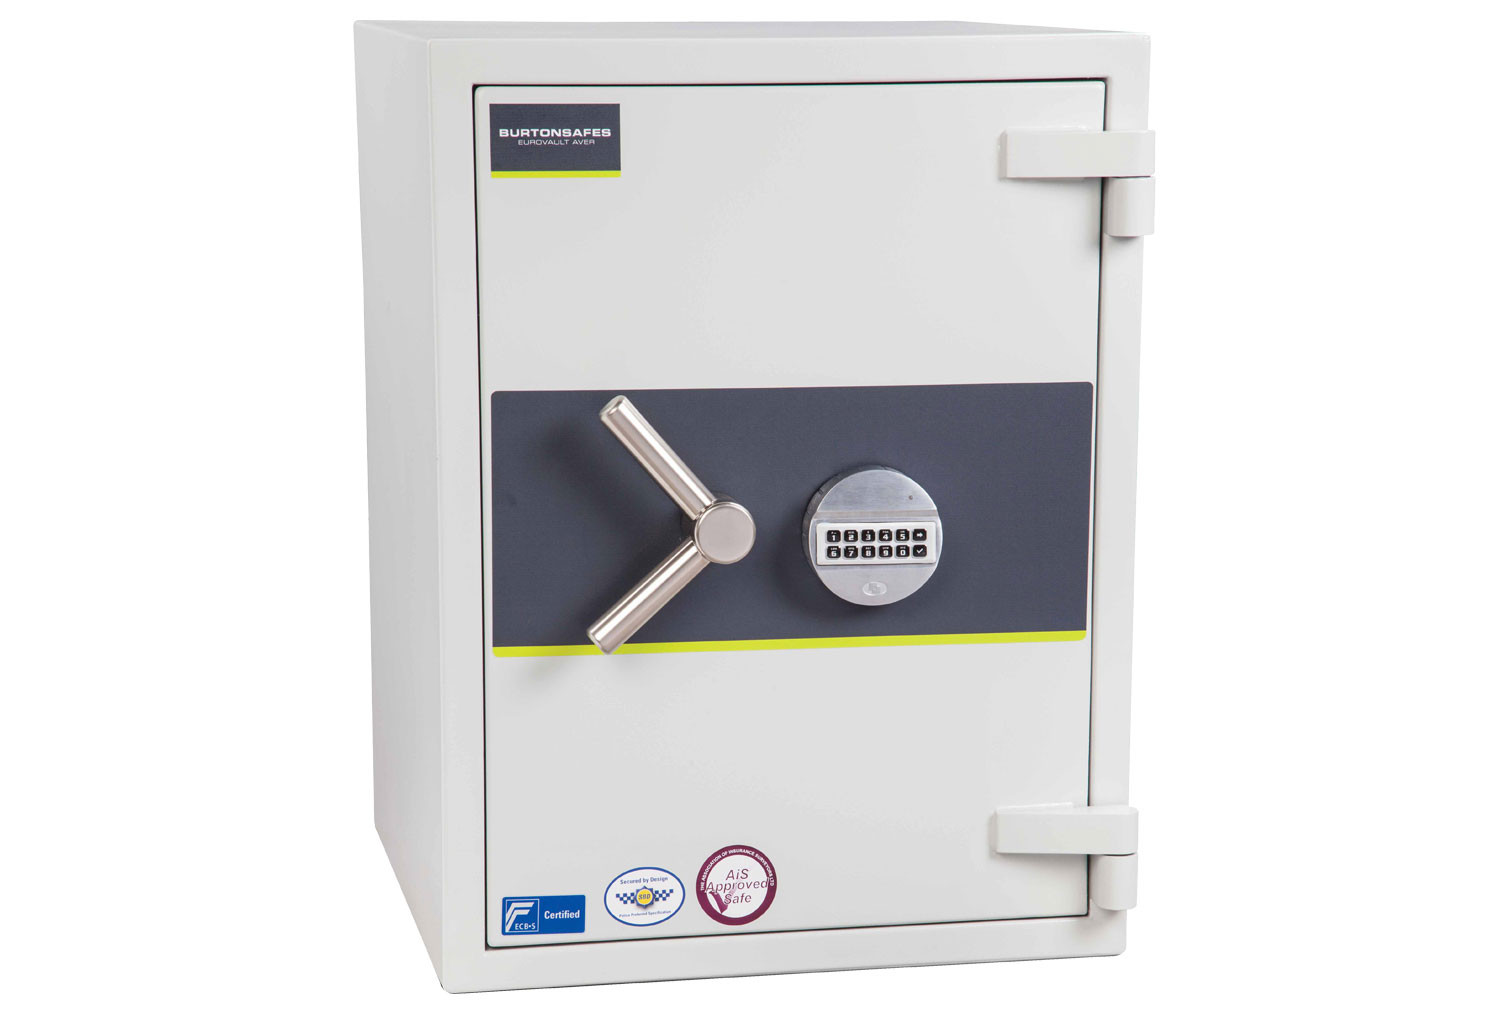 Burton Eurovault Aver Grade 2 Size 2 Safe With Electronic Lock (91ltrs)